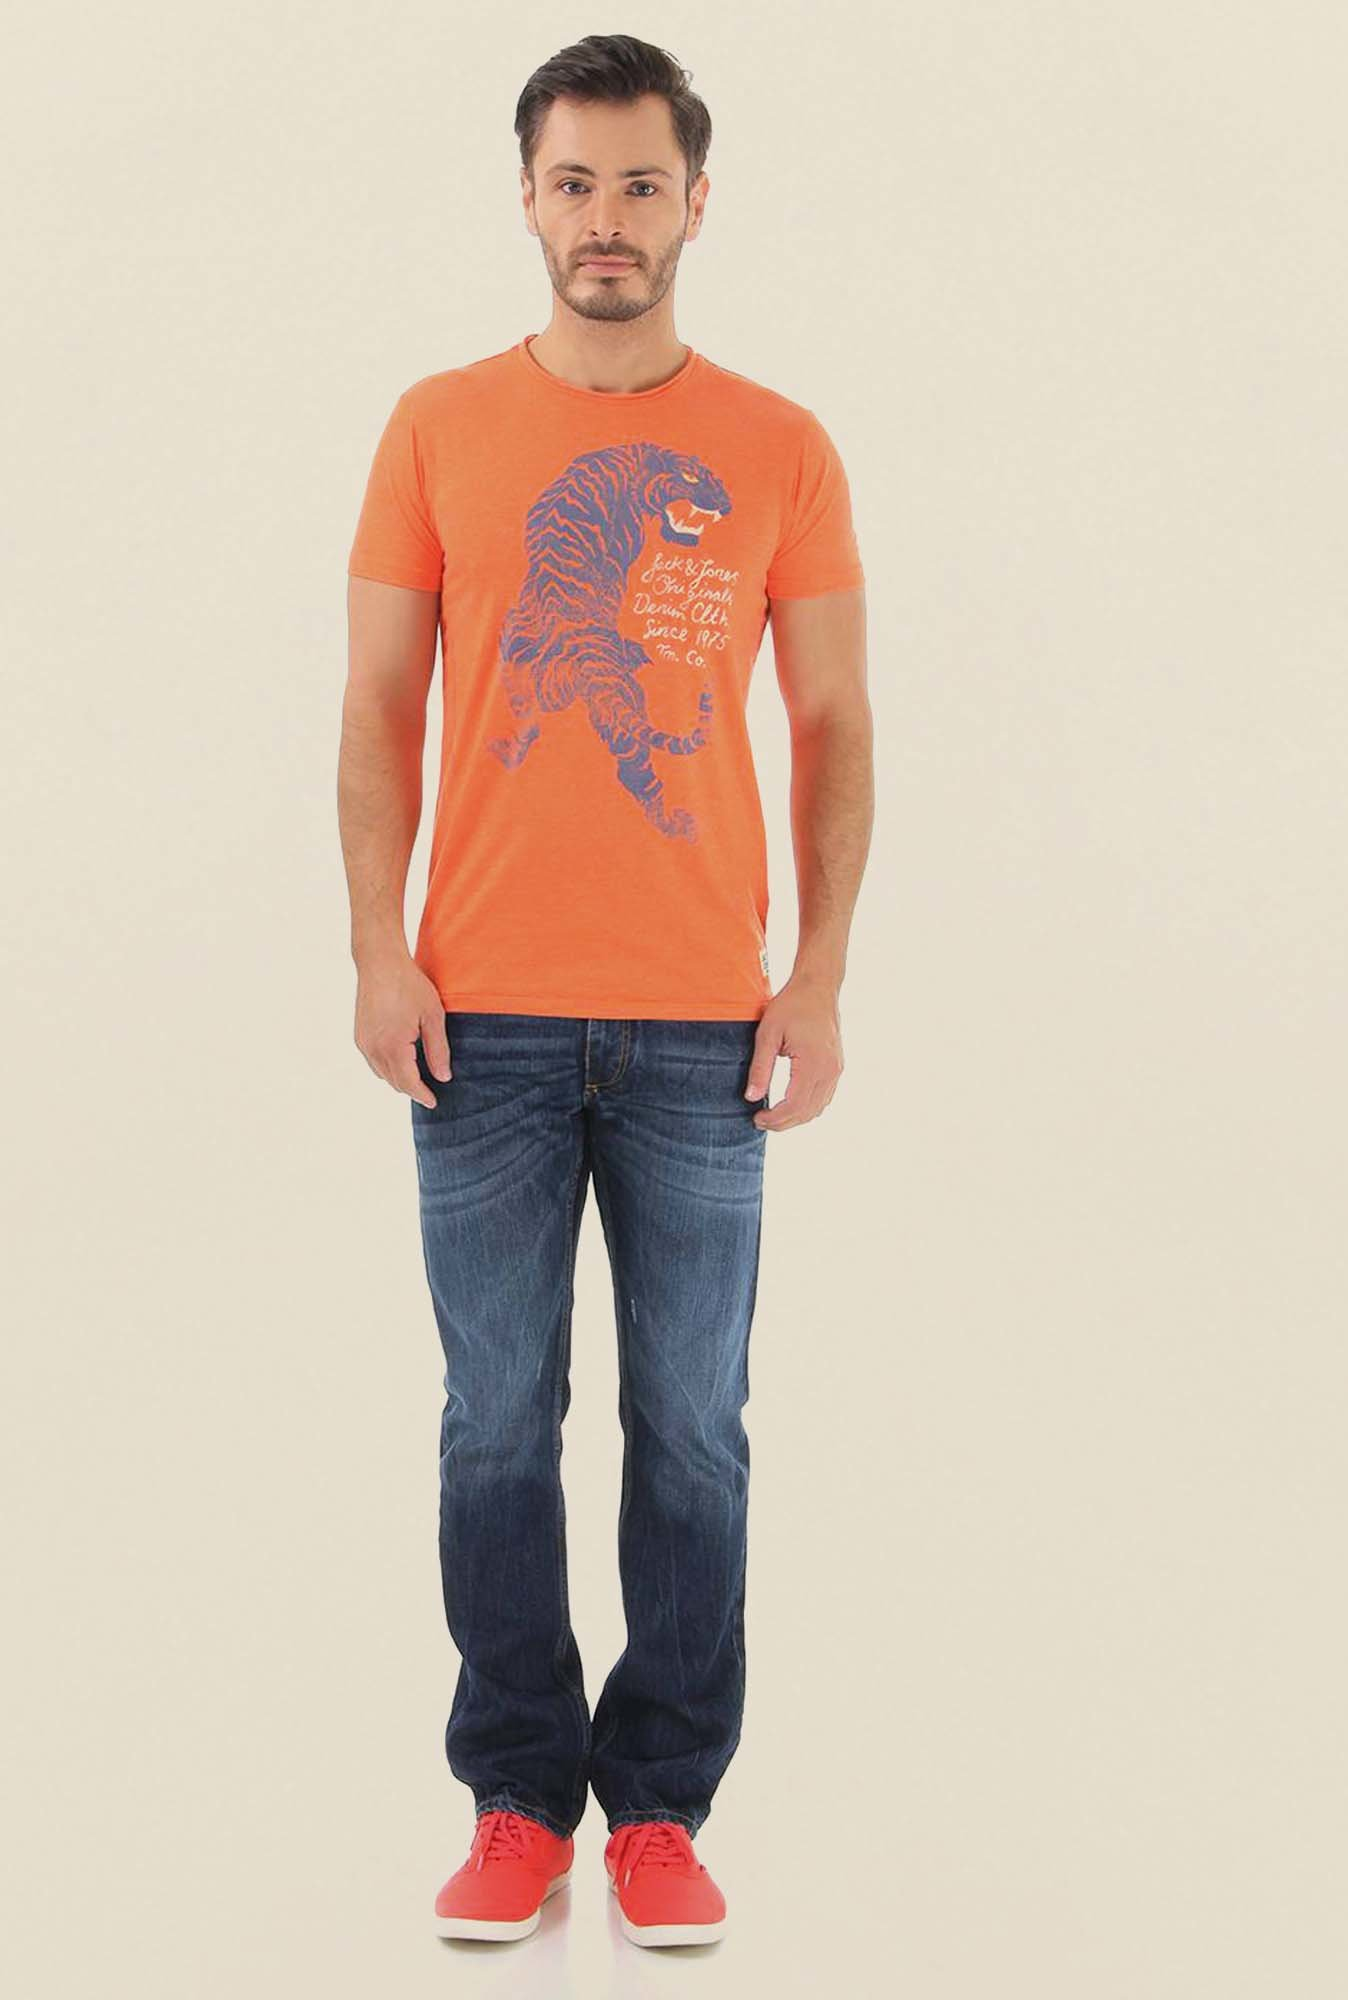 Jack & Jones Orange Printed Crew Neck T-Shirt